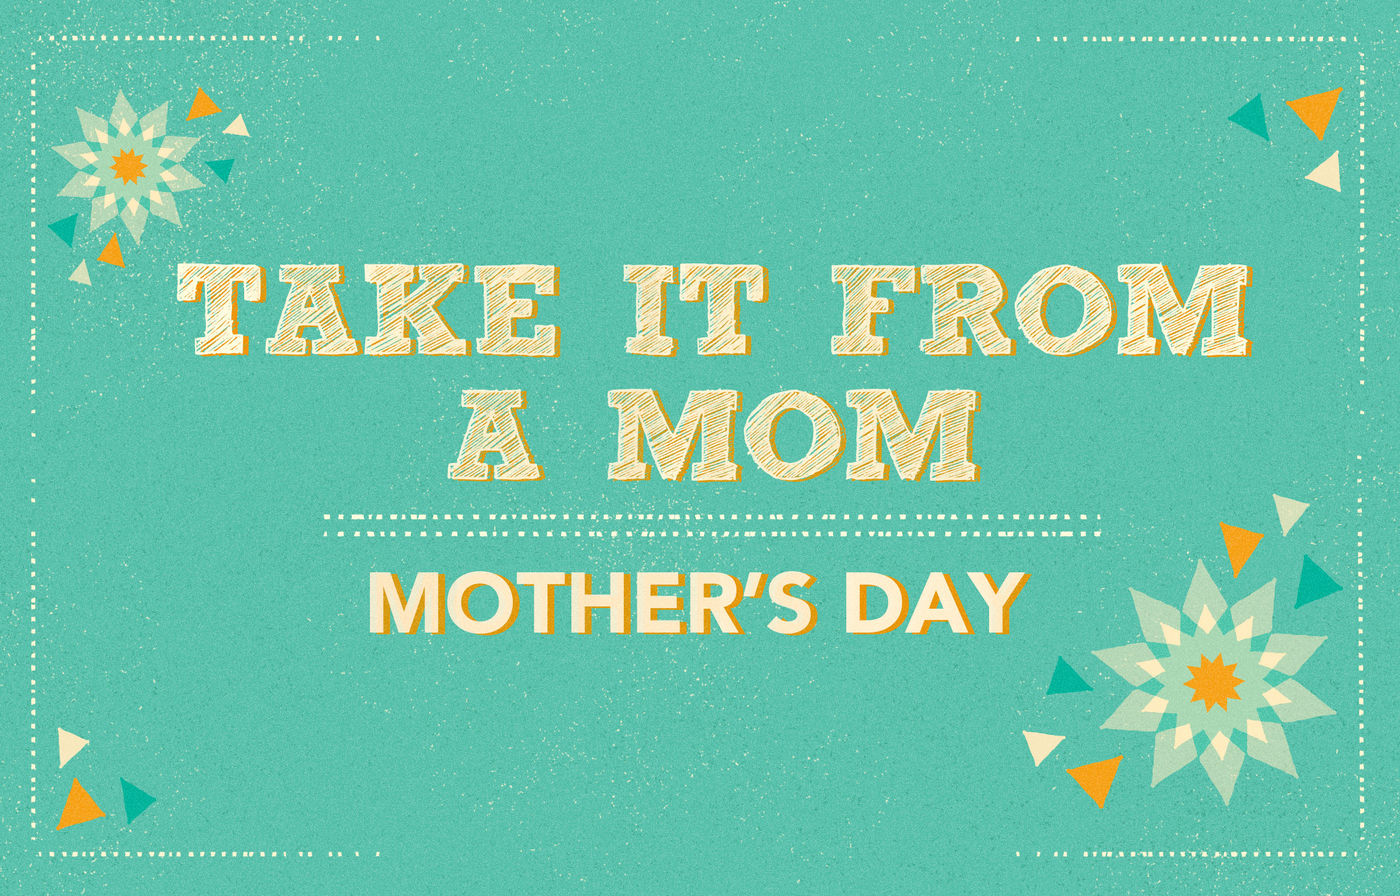 Mother's Day 2015 banner